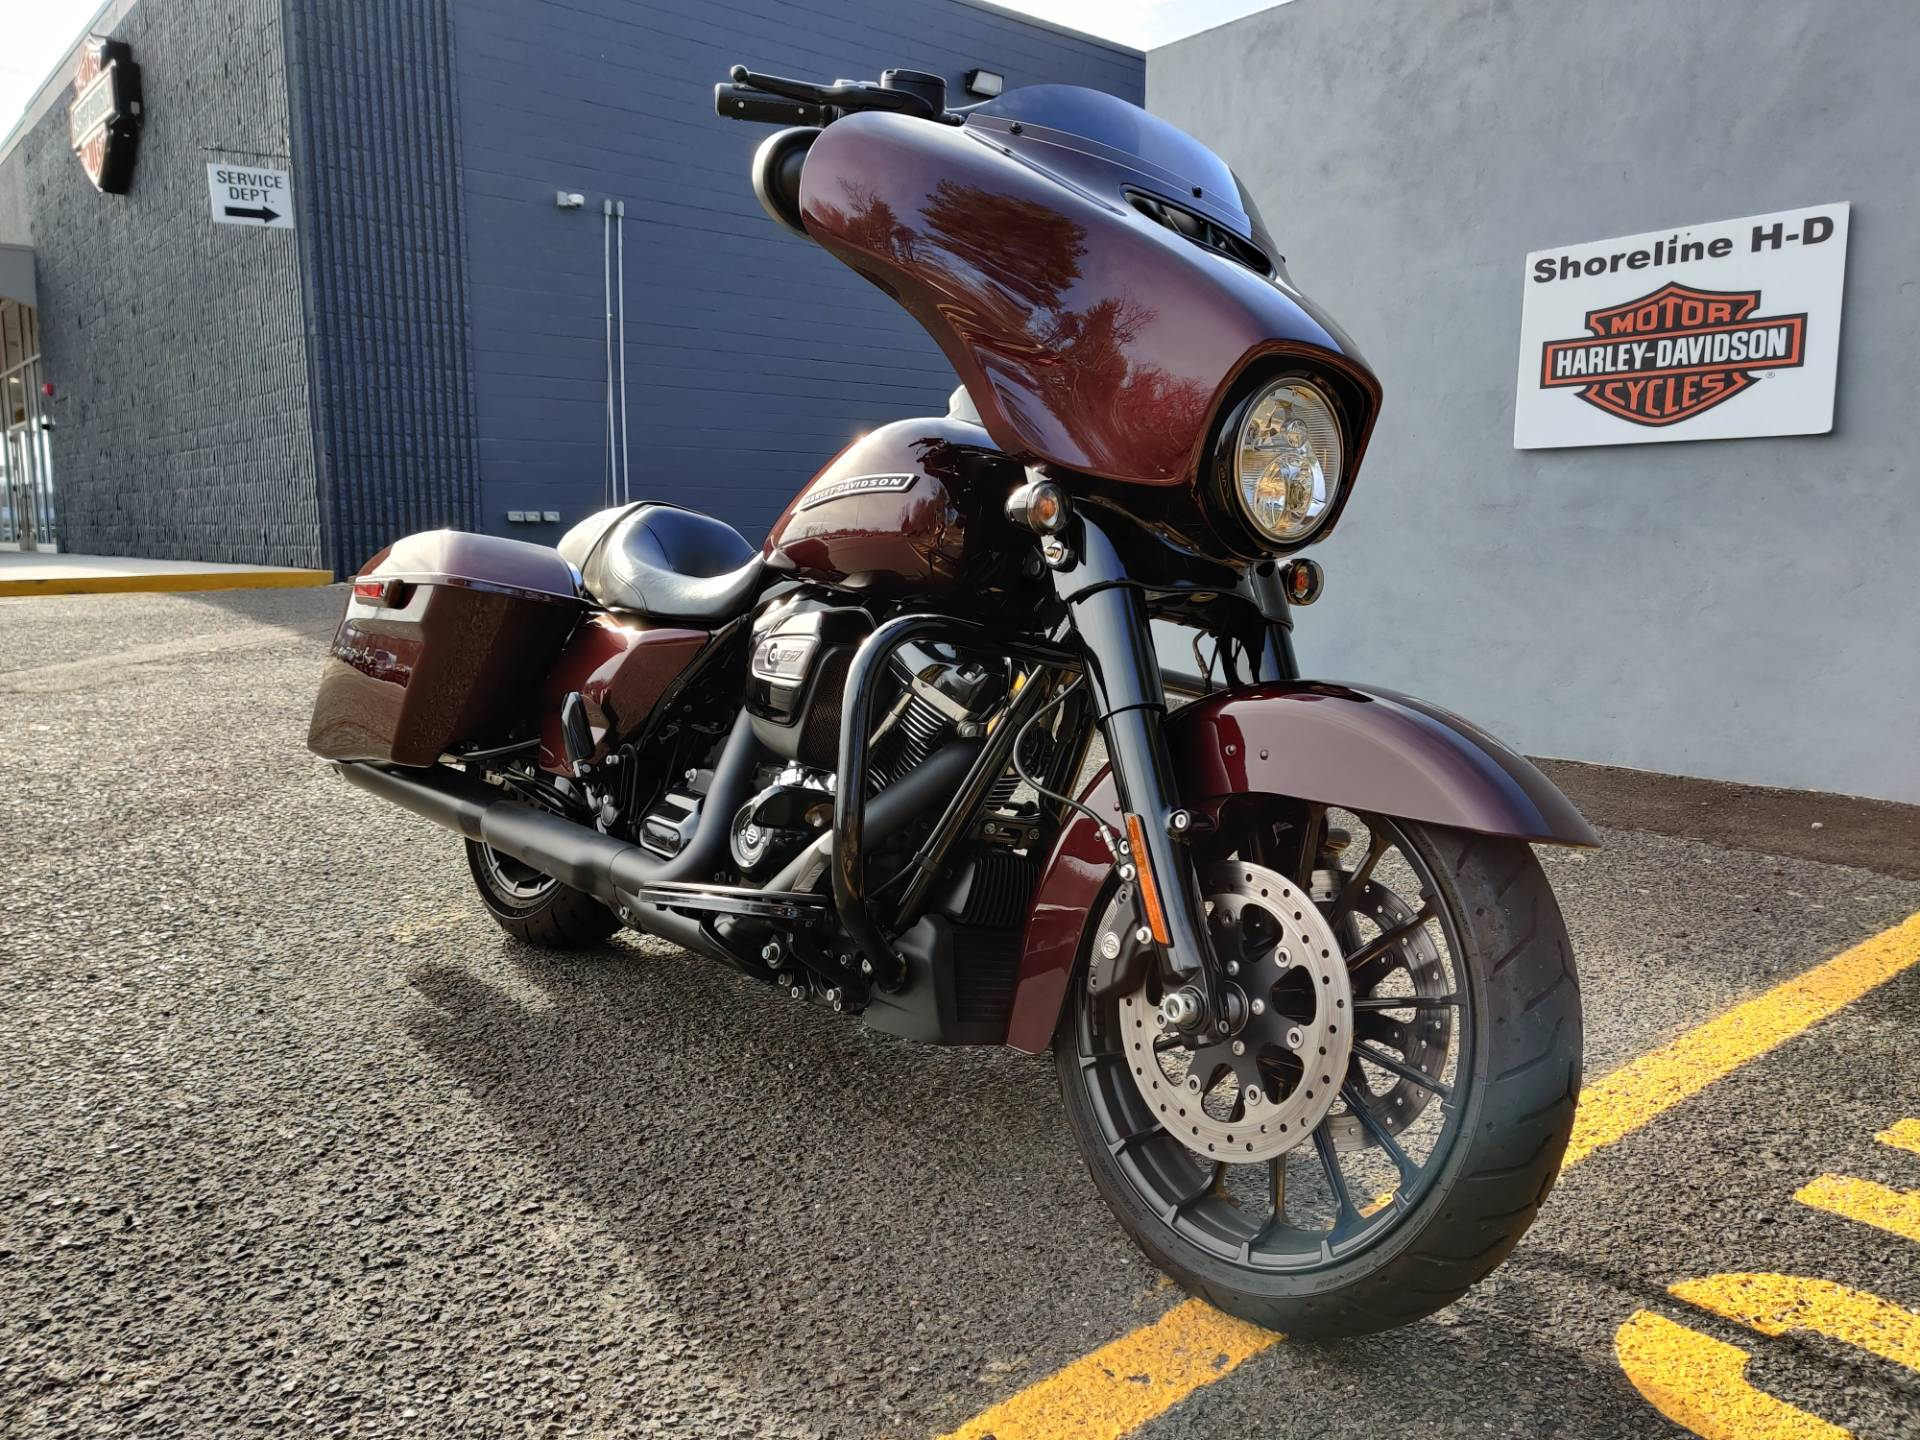 2018 Harley-Davidson Street Glide Special in West Long Branch, New Jersey - Photo 3